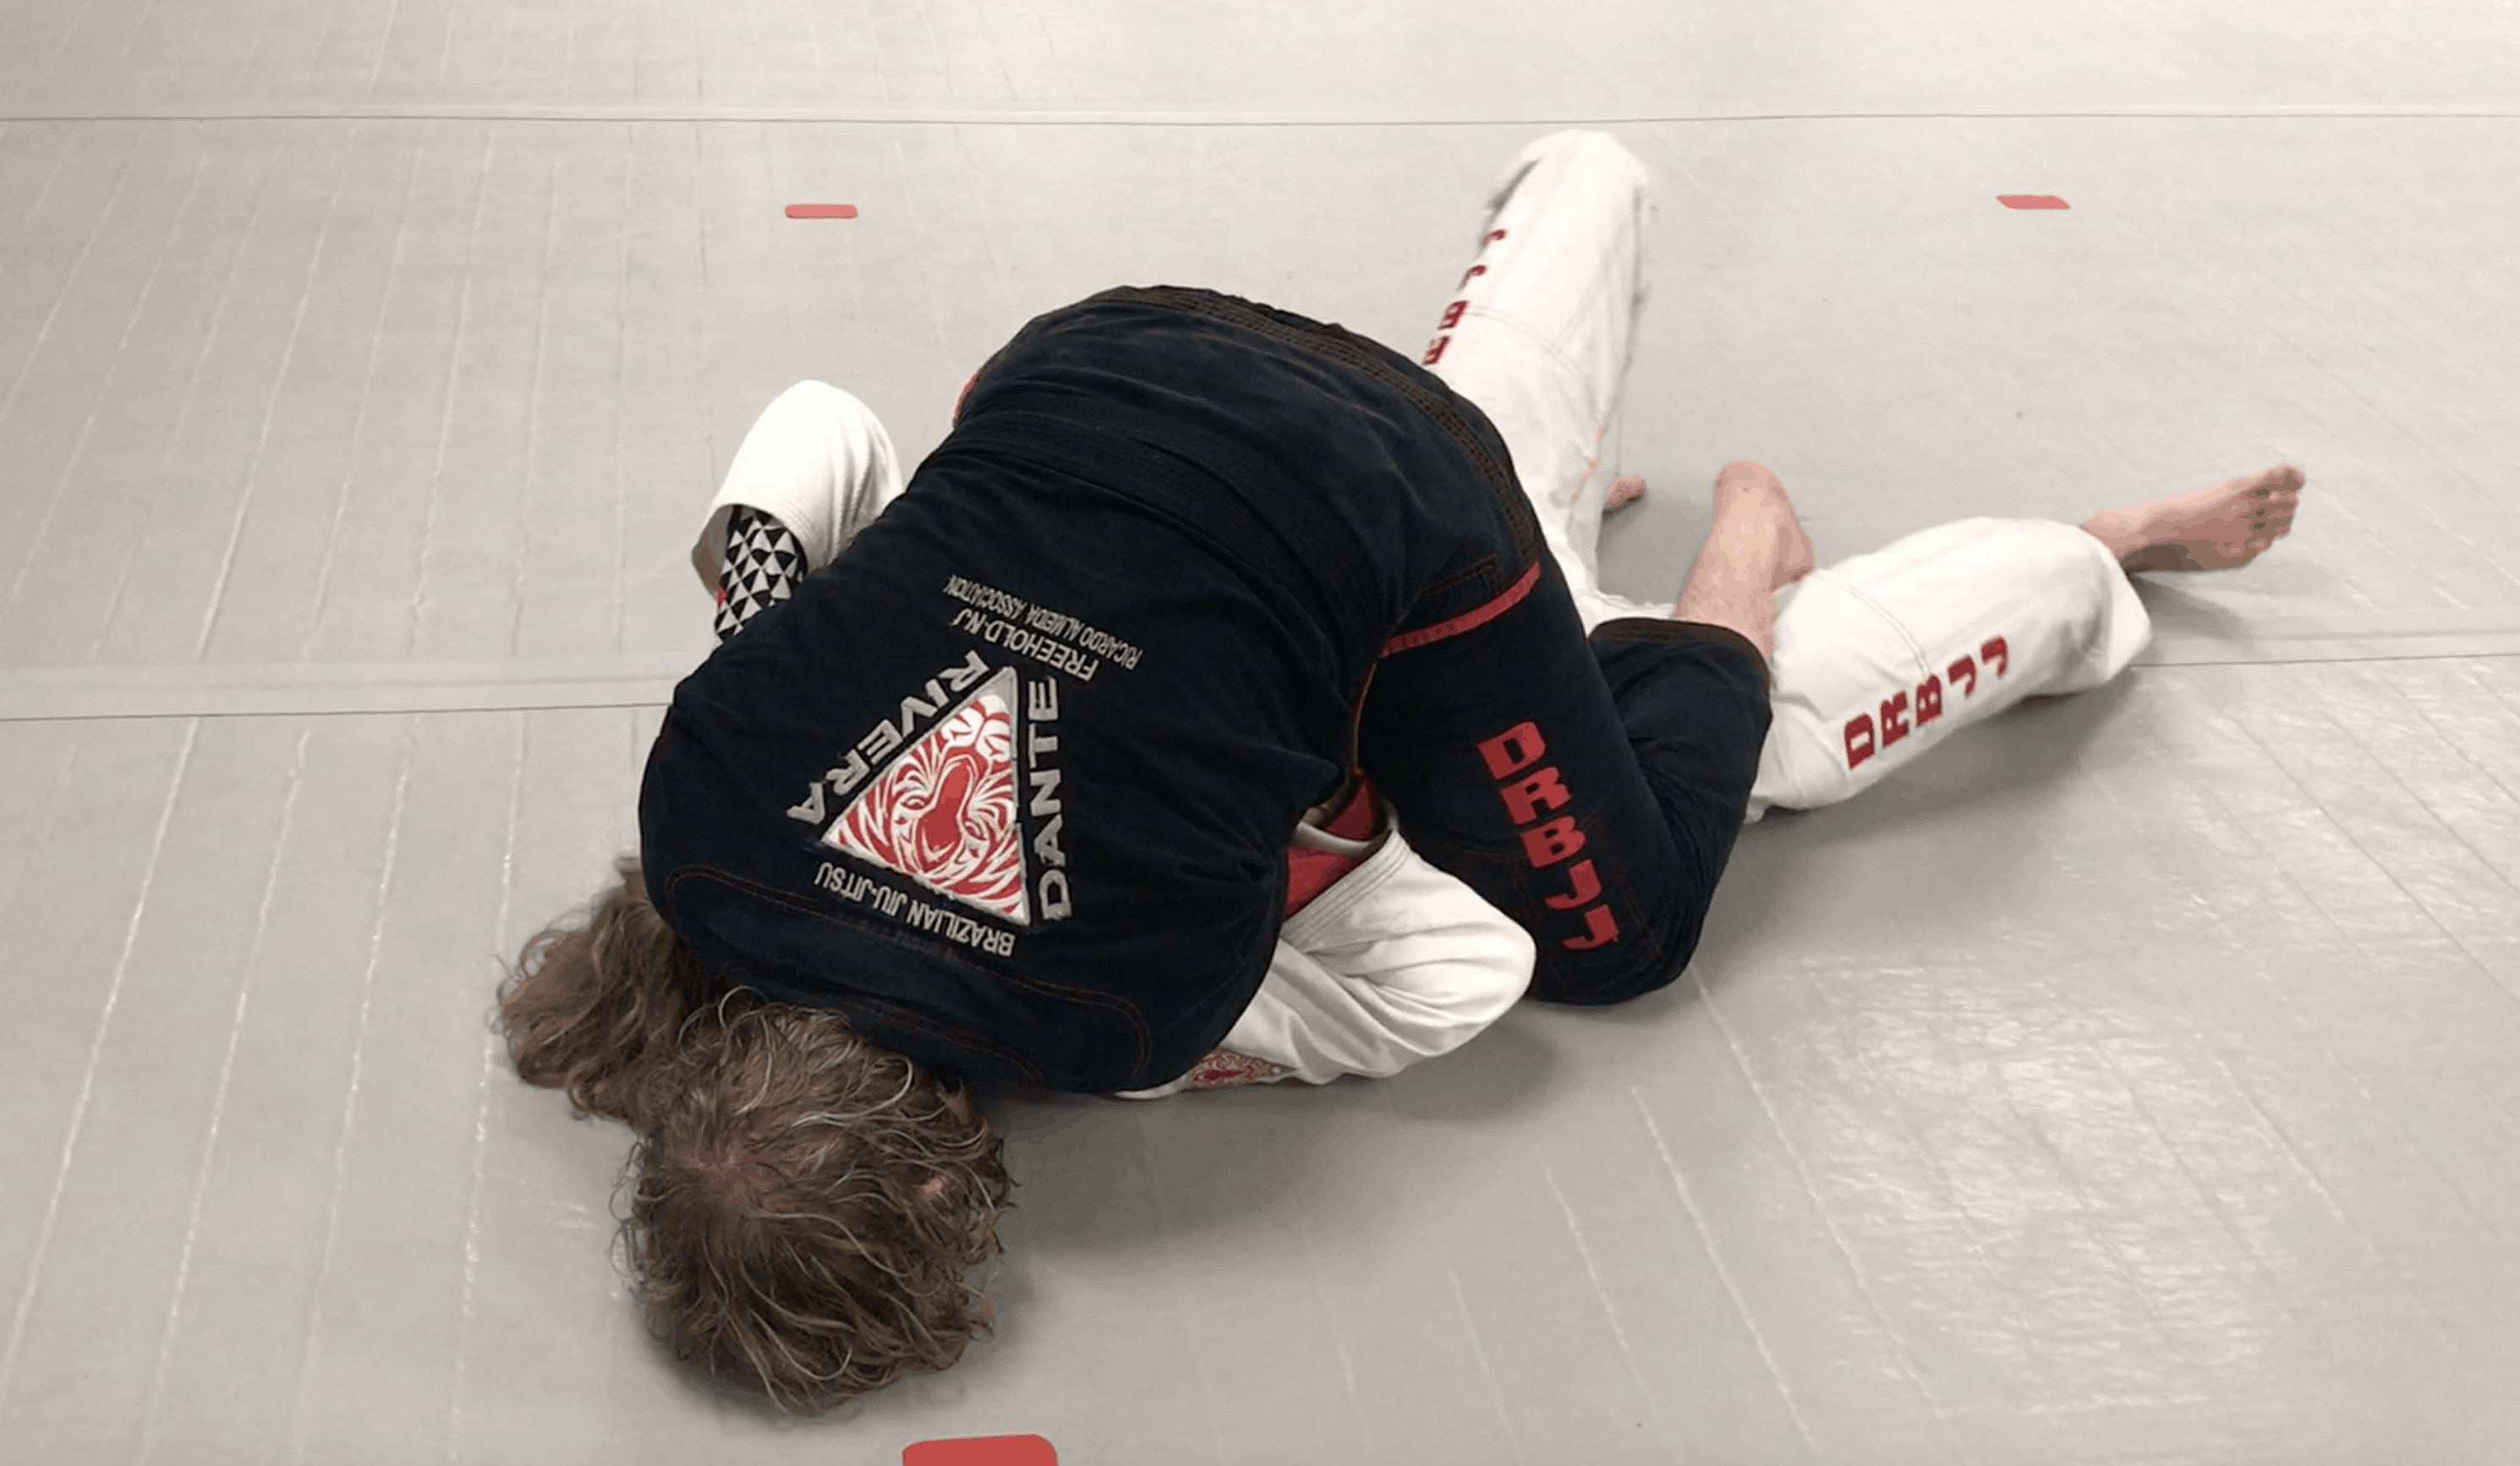 [VIDEO] Top Mount Gi Control Palm Up Grip in Collar, Backstep Cross Collar Choke